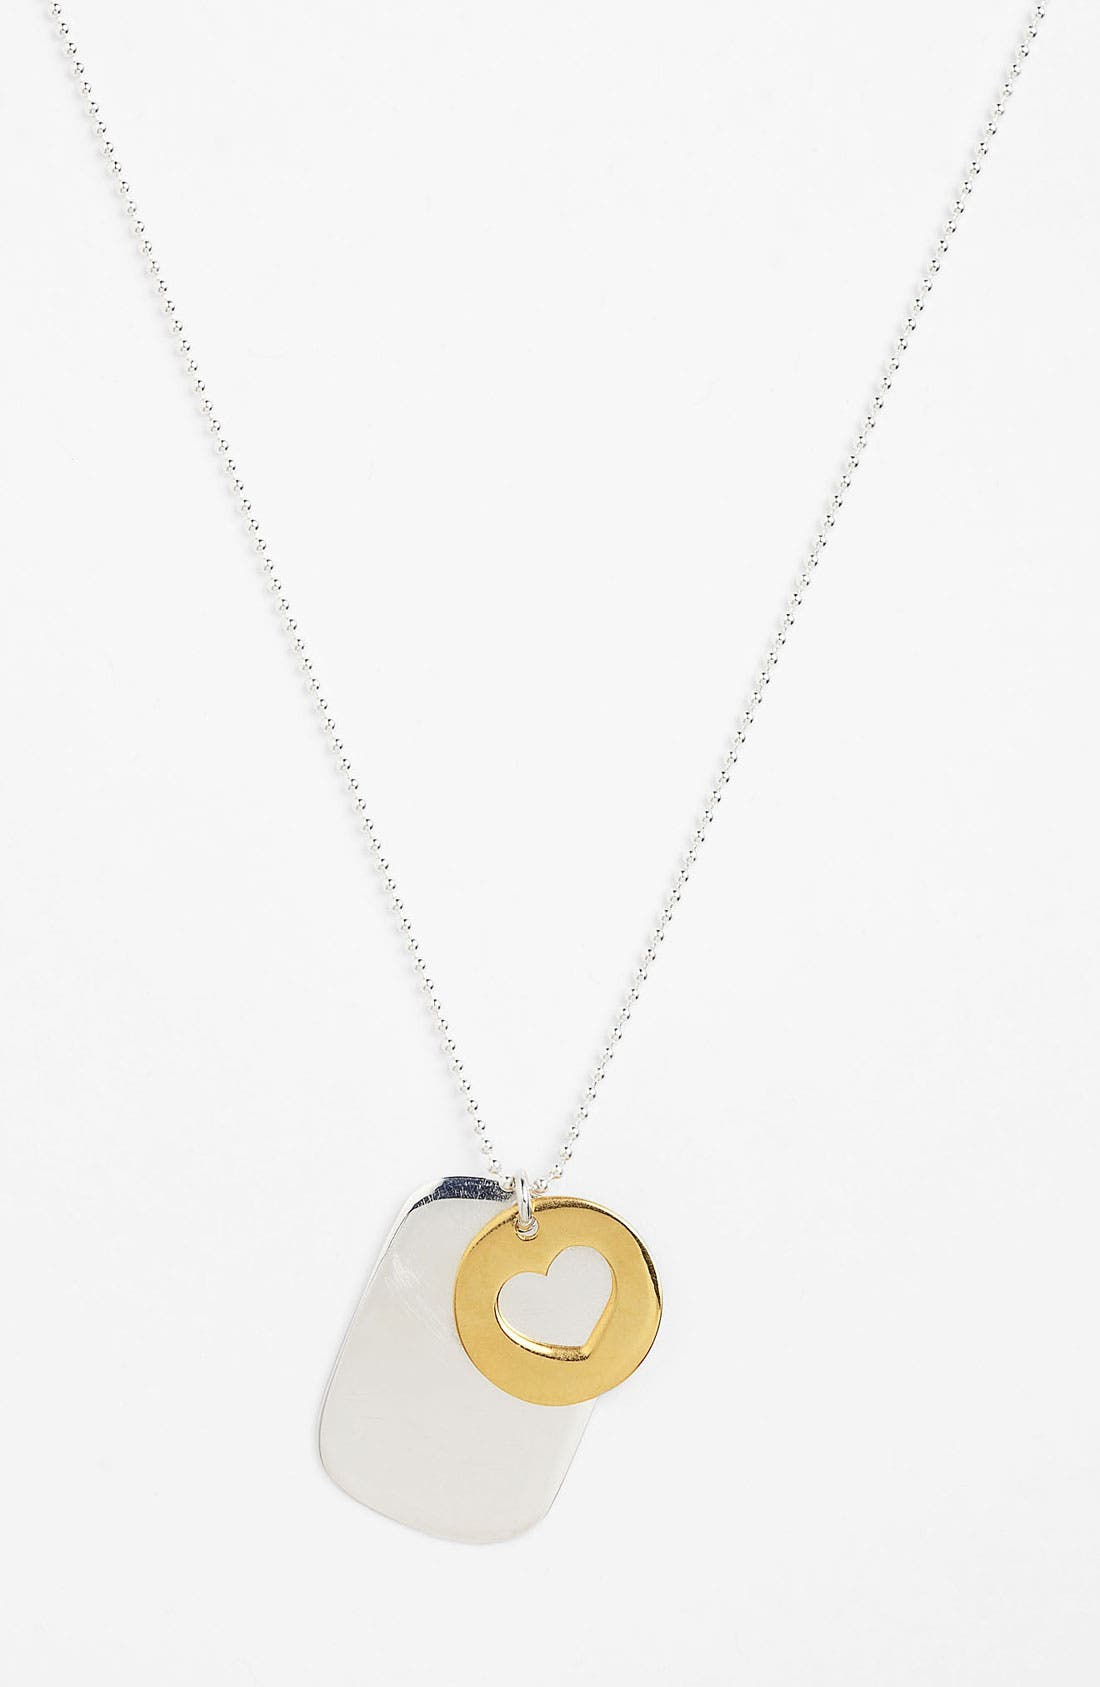 Alternate Image 1 Selected - Argento Vivo 'Love' Pendant Necklace (Nordstrom Exclusive)